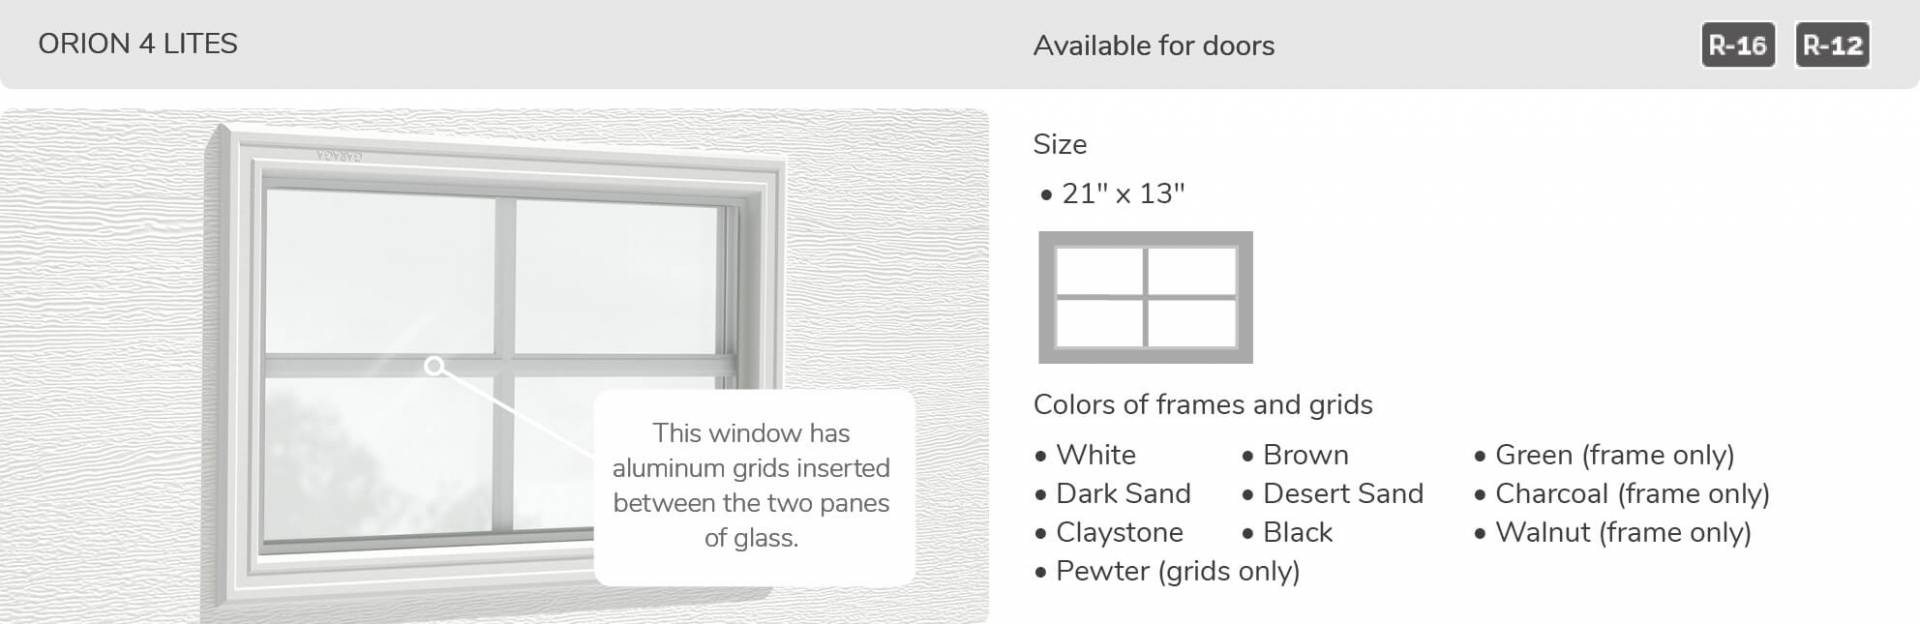 Orion 4 lites windows, 21' x 13', available dor doors R-16 and R-12